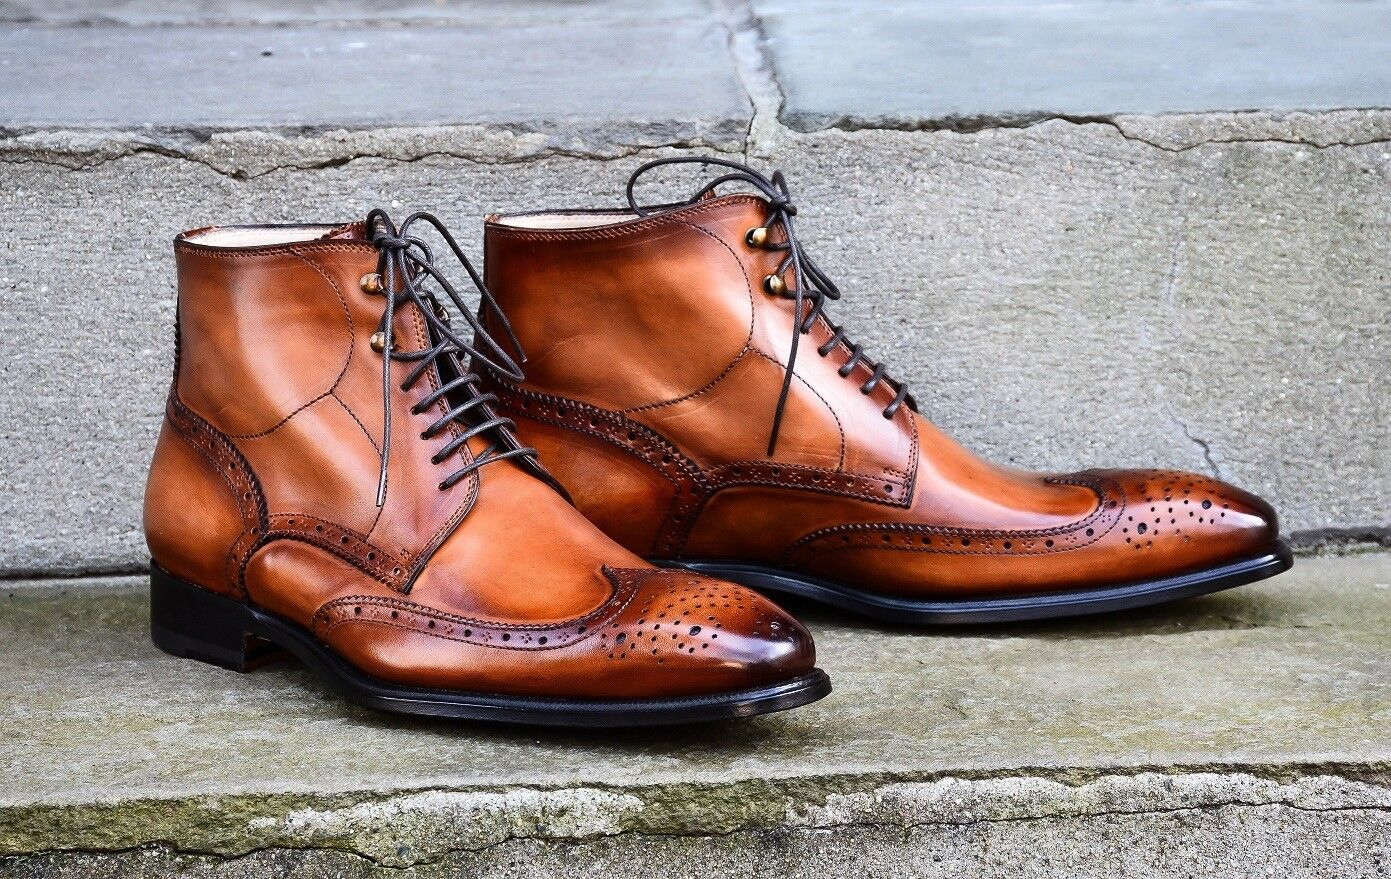 Hand Stitched Men Lace Up Classic boots, Brogues Designer Leather boots, Classic online boots 2a37a2